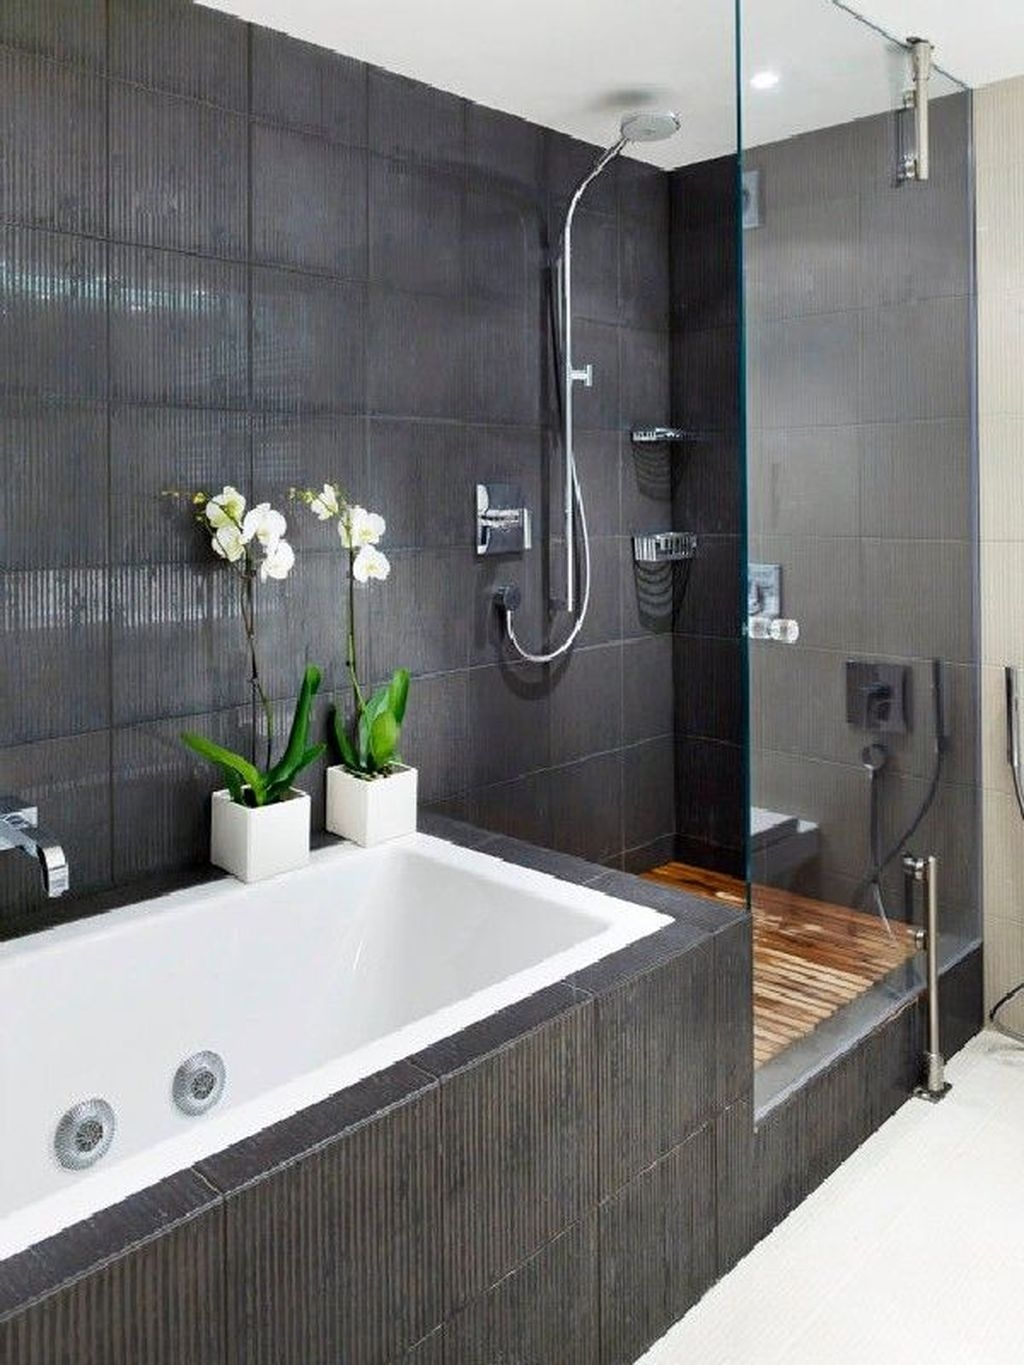 Impressive Bathroom Interior Design Ideas10